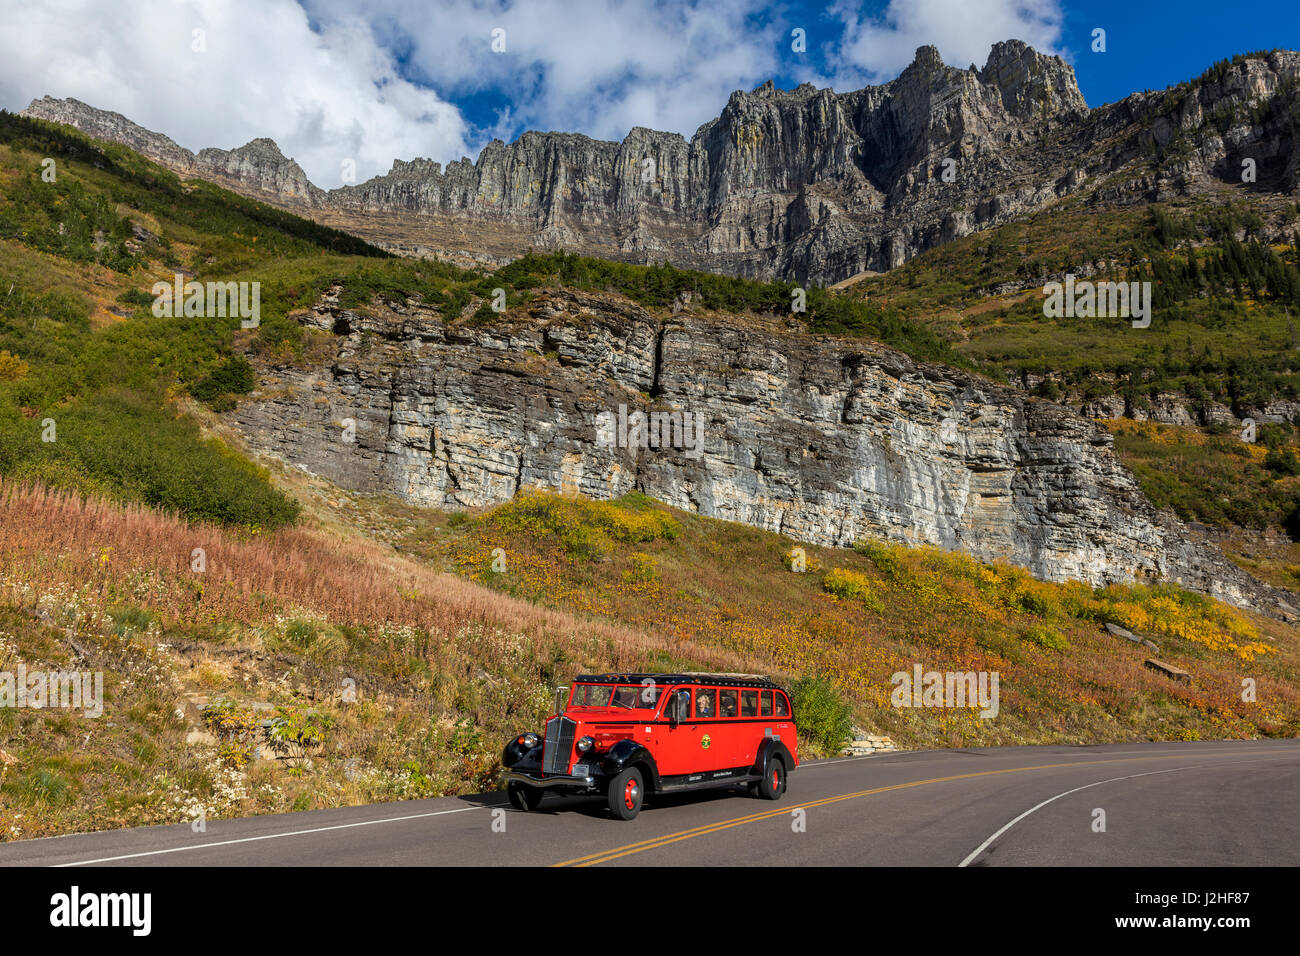 Red Jammer Bus Stock Photos & Red Jammer Bus Stock Images - Alamy